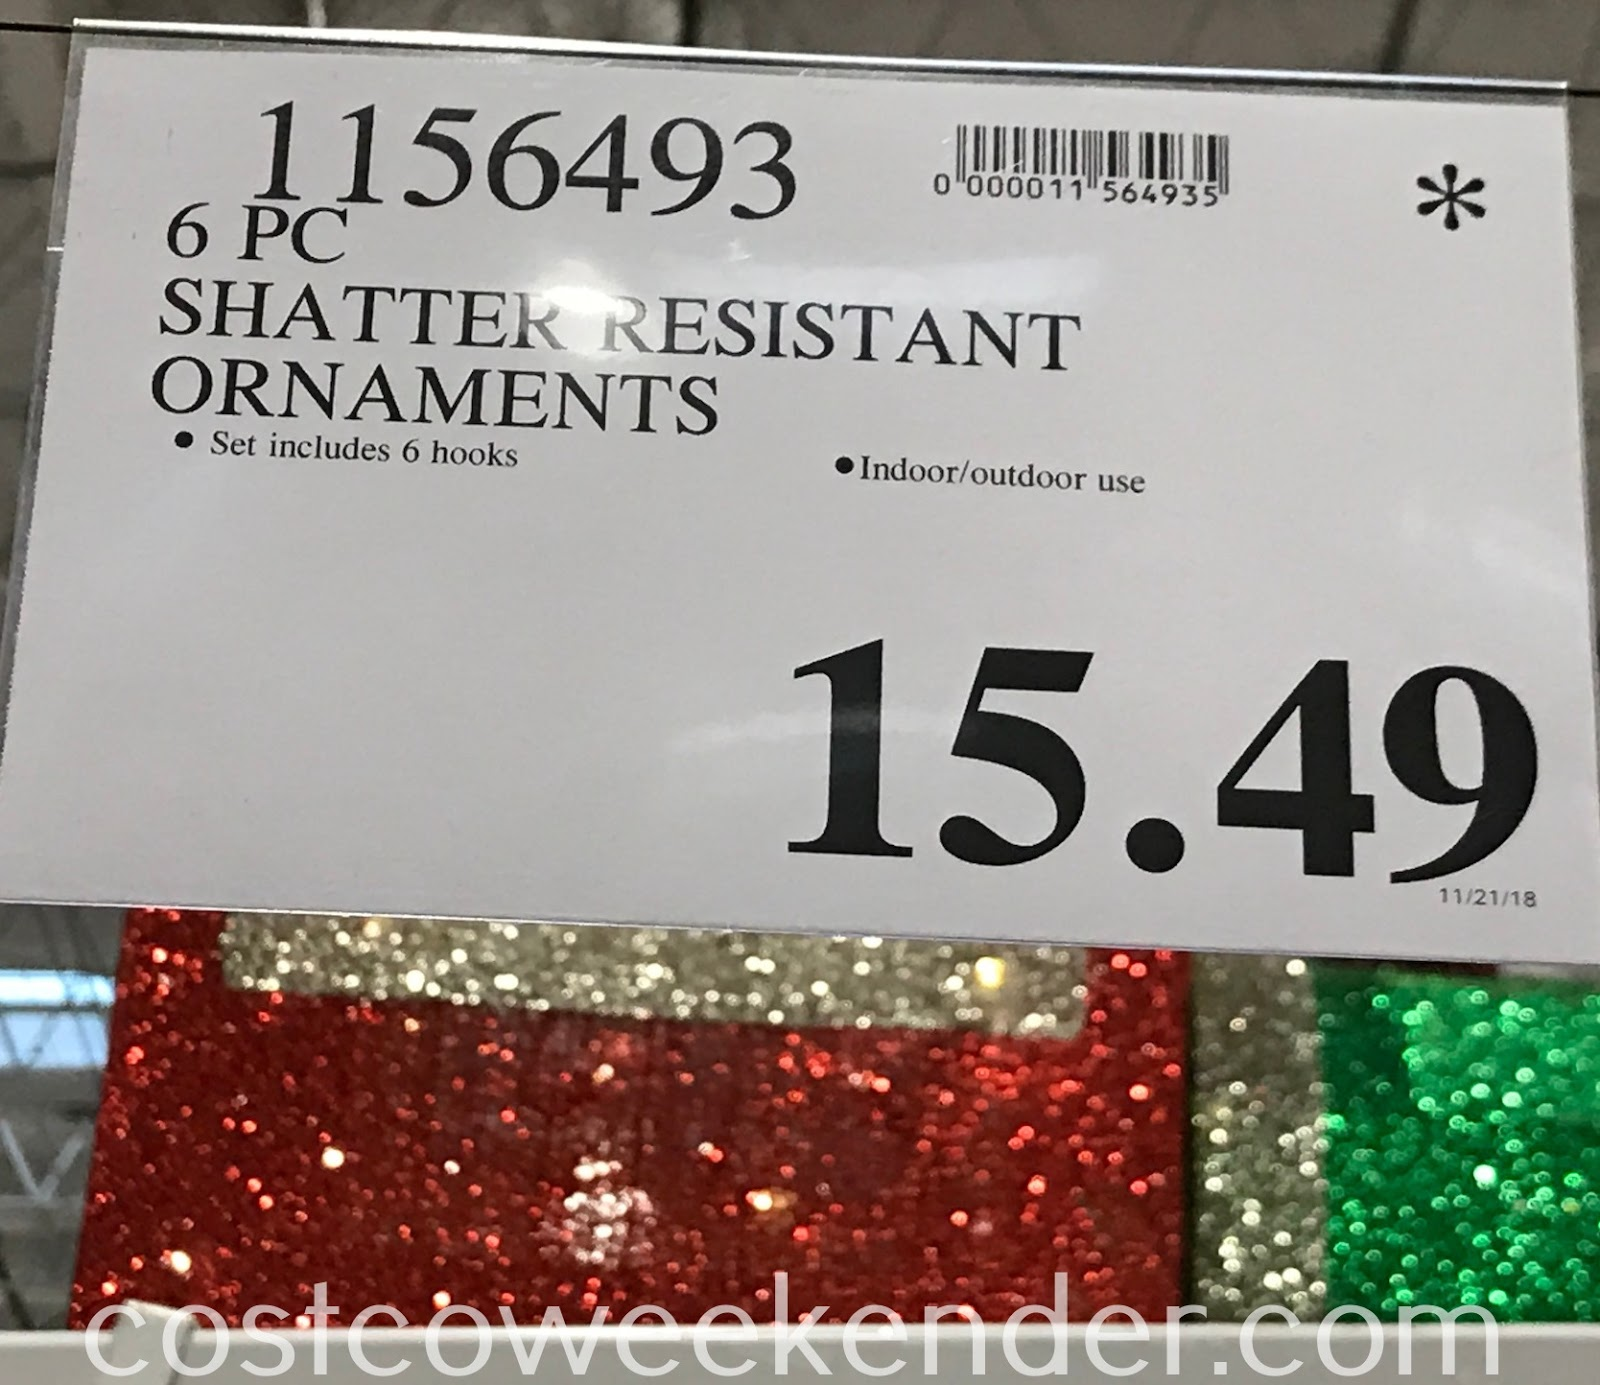 Deal for the 6-piece Shatter Resistant Ornaments at Costco